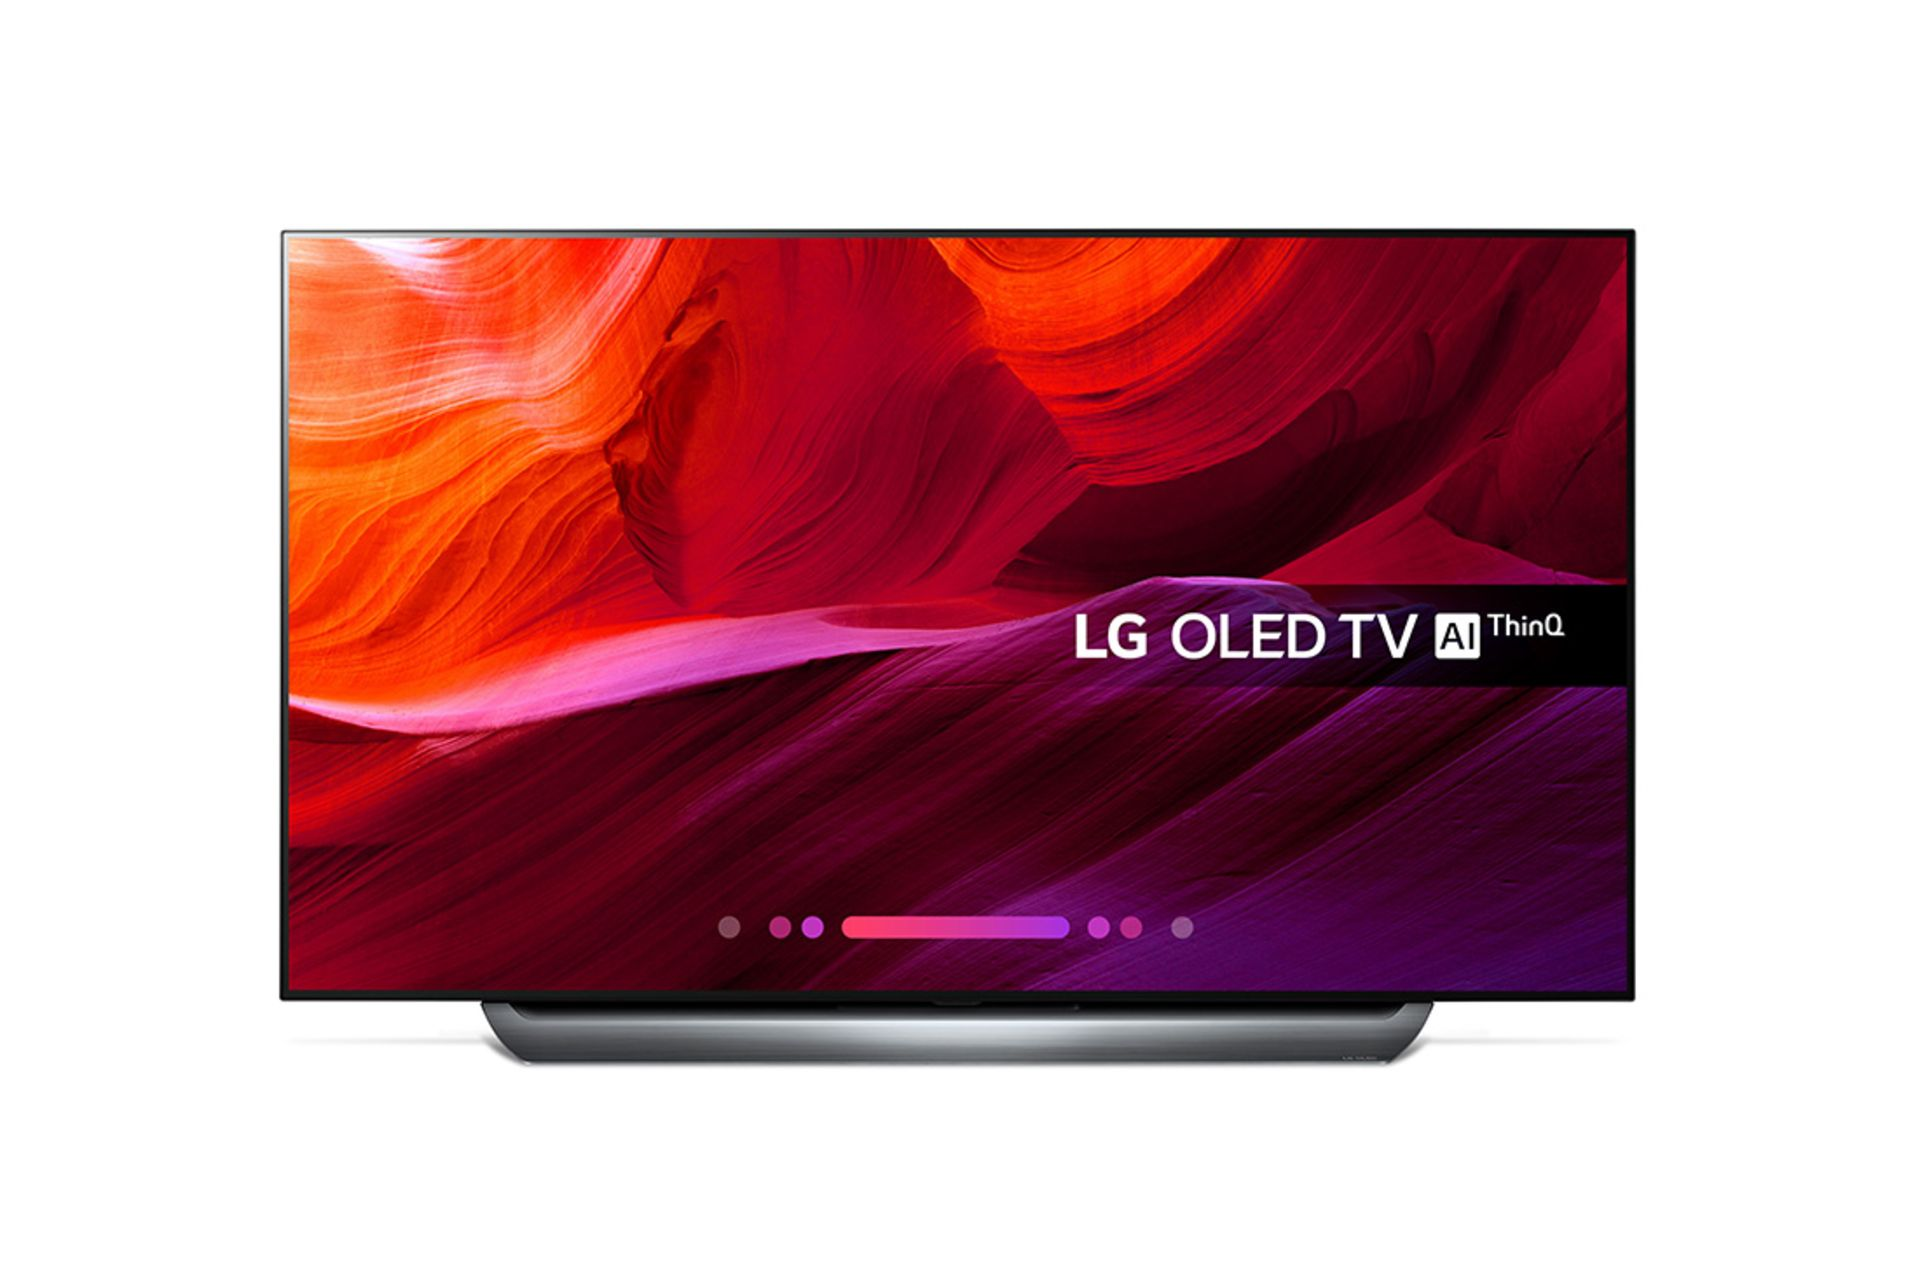 Lotto 30005 - V Grade A LG 65 Inch FLAT OLED ACTIVE HDR 4K UHD SMART TV WITH FREEVIEW HD & WEBOS 4.0 & WIFI - AI